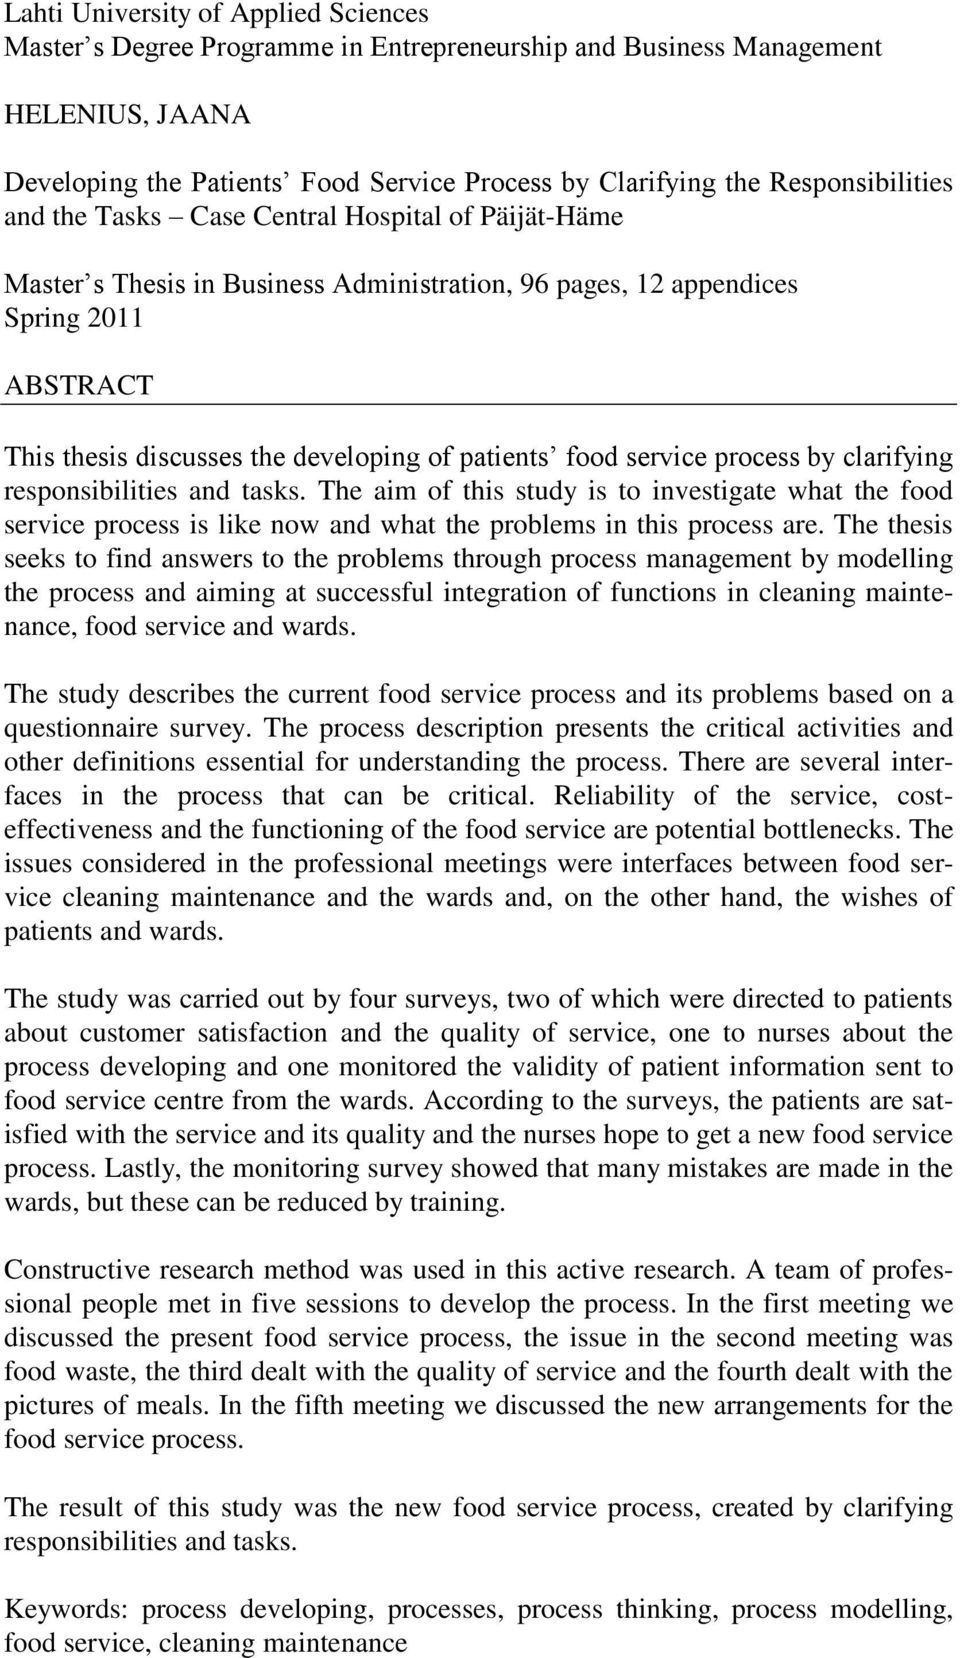 patients food service process by clarifying responsibilities and tasks. The aim of this study is to investigate what the food service process is like now and what the problems in this process are.